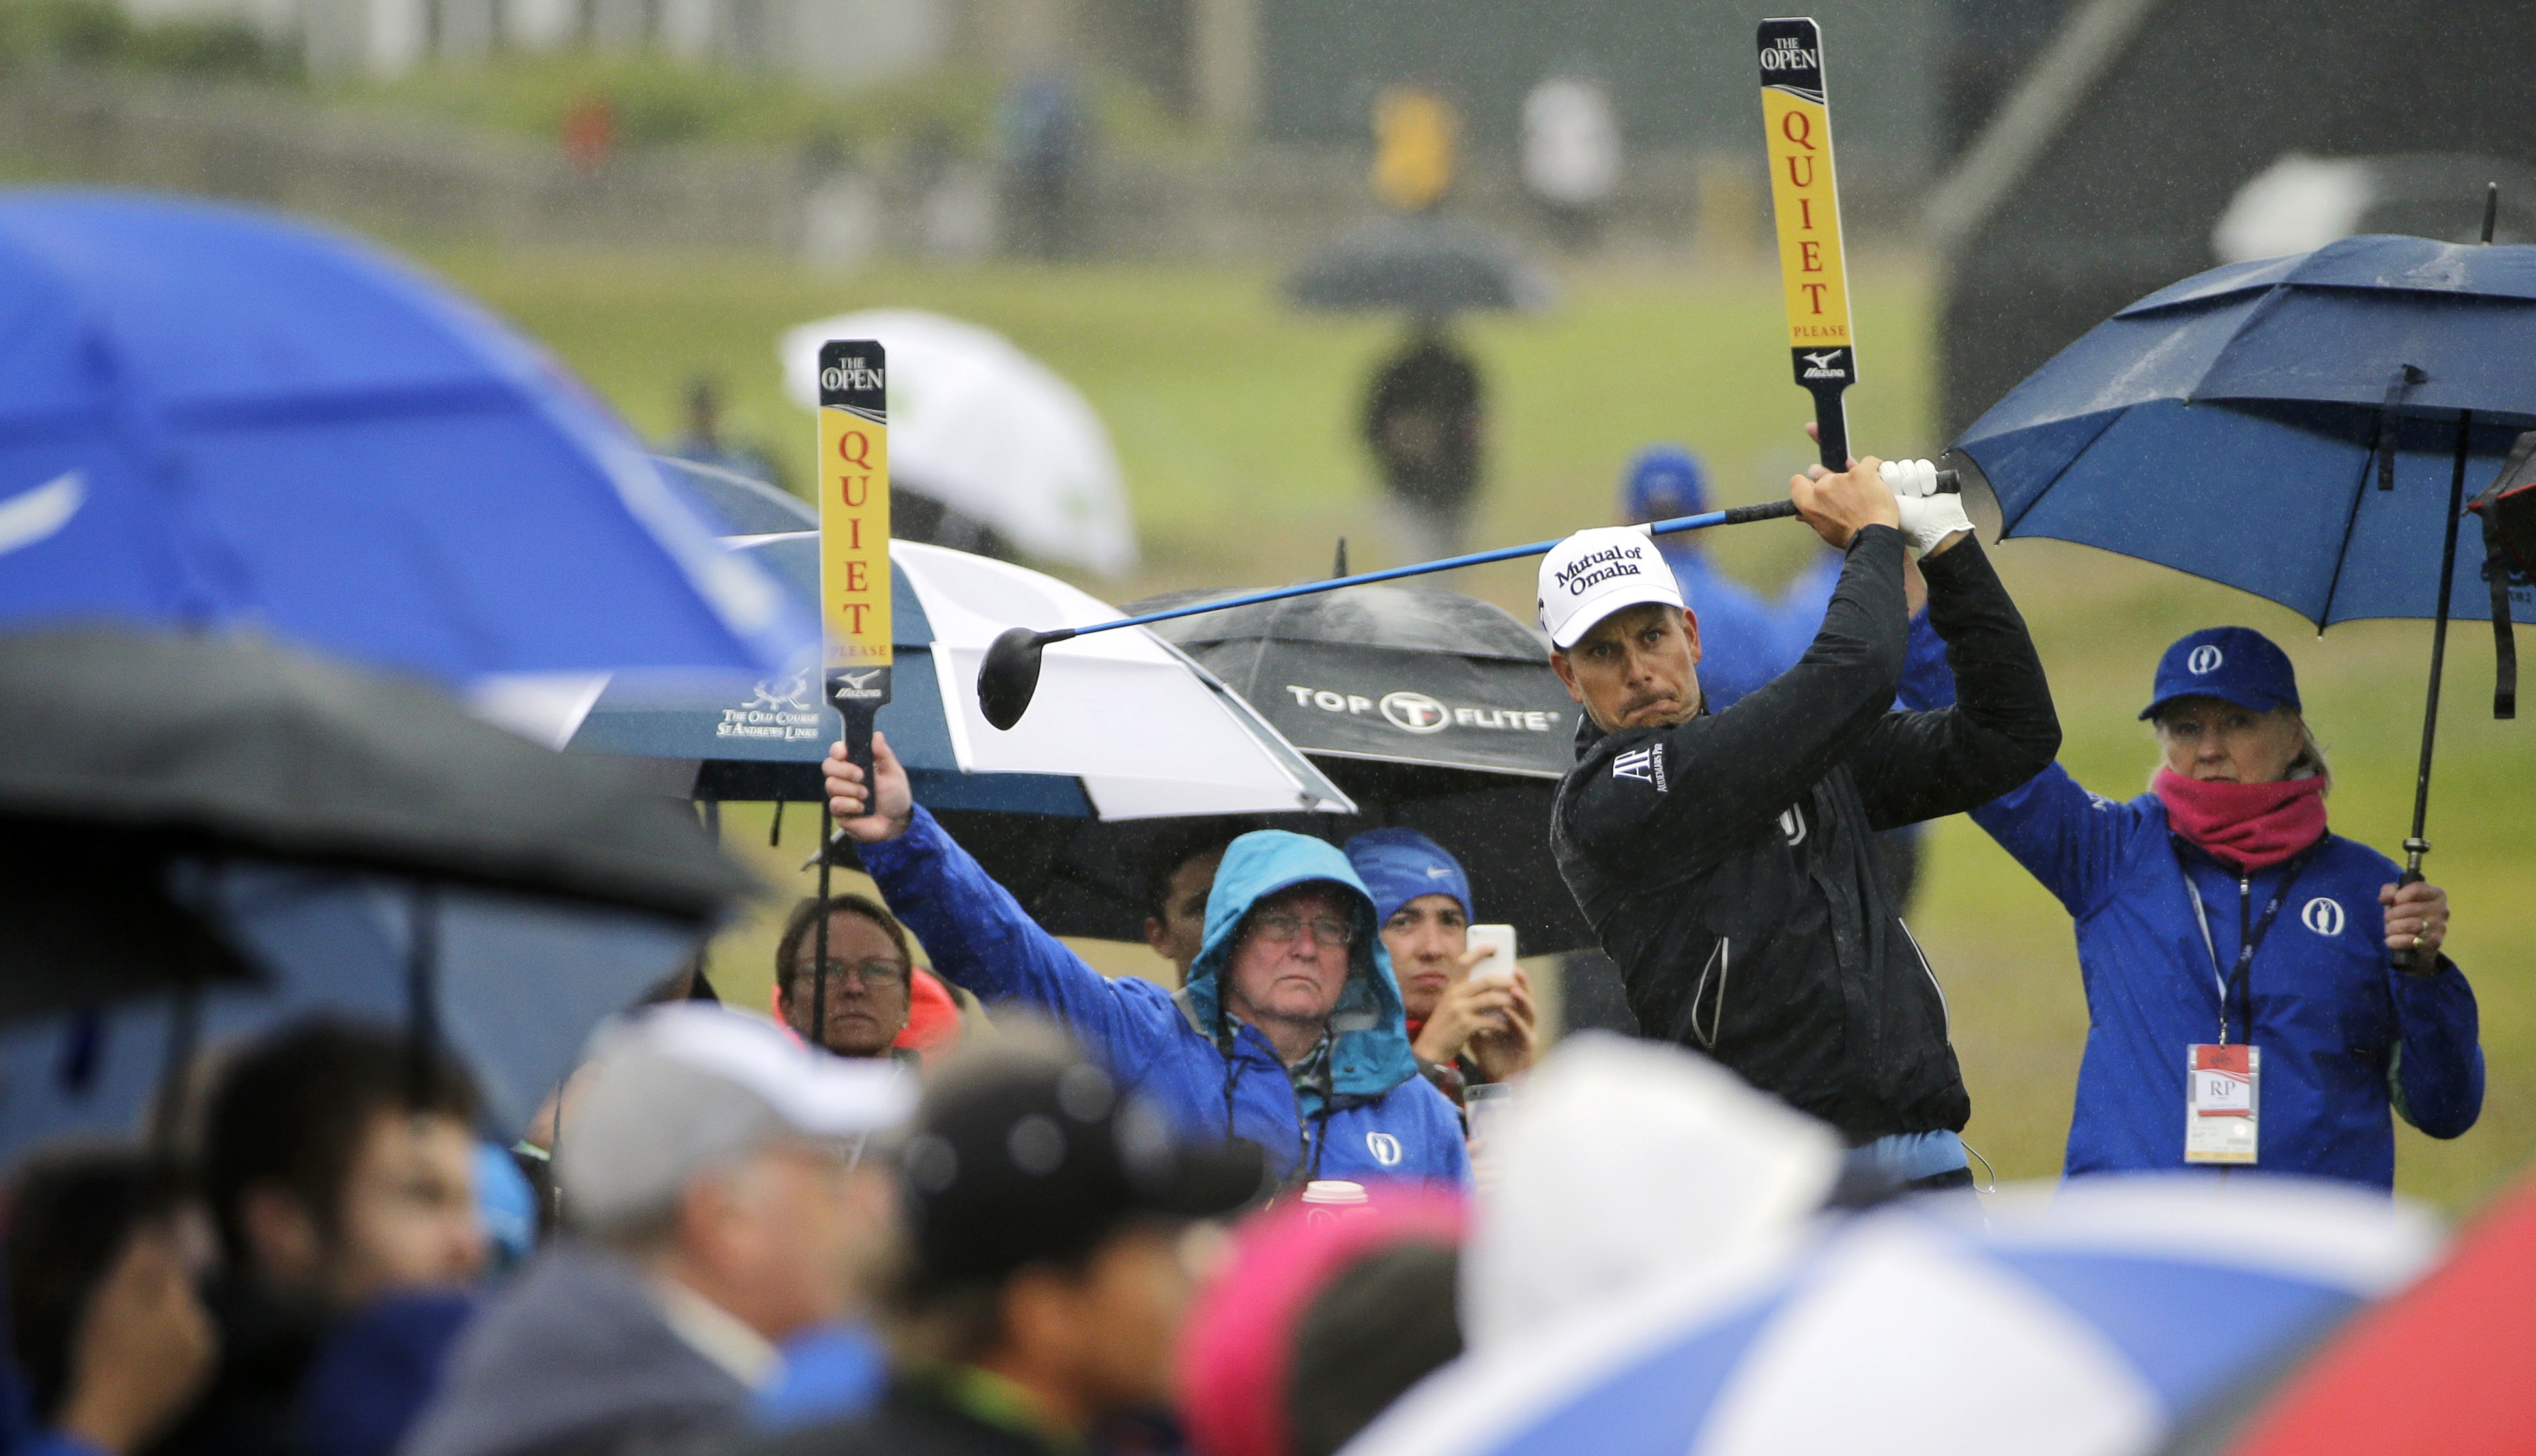 Sweden's Henrik Stenson drives a ball from the 14th tee during a practice round at the British Open Golf Championship at the Old Course, St. Andrews, Scotland, Wednesday, July 15, 2015. (AP Photo/David J. Phillip)